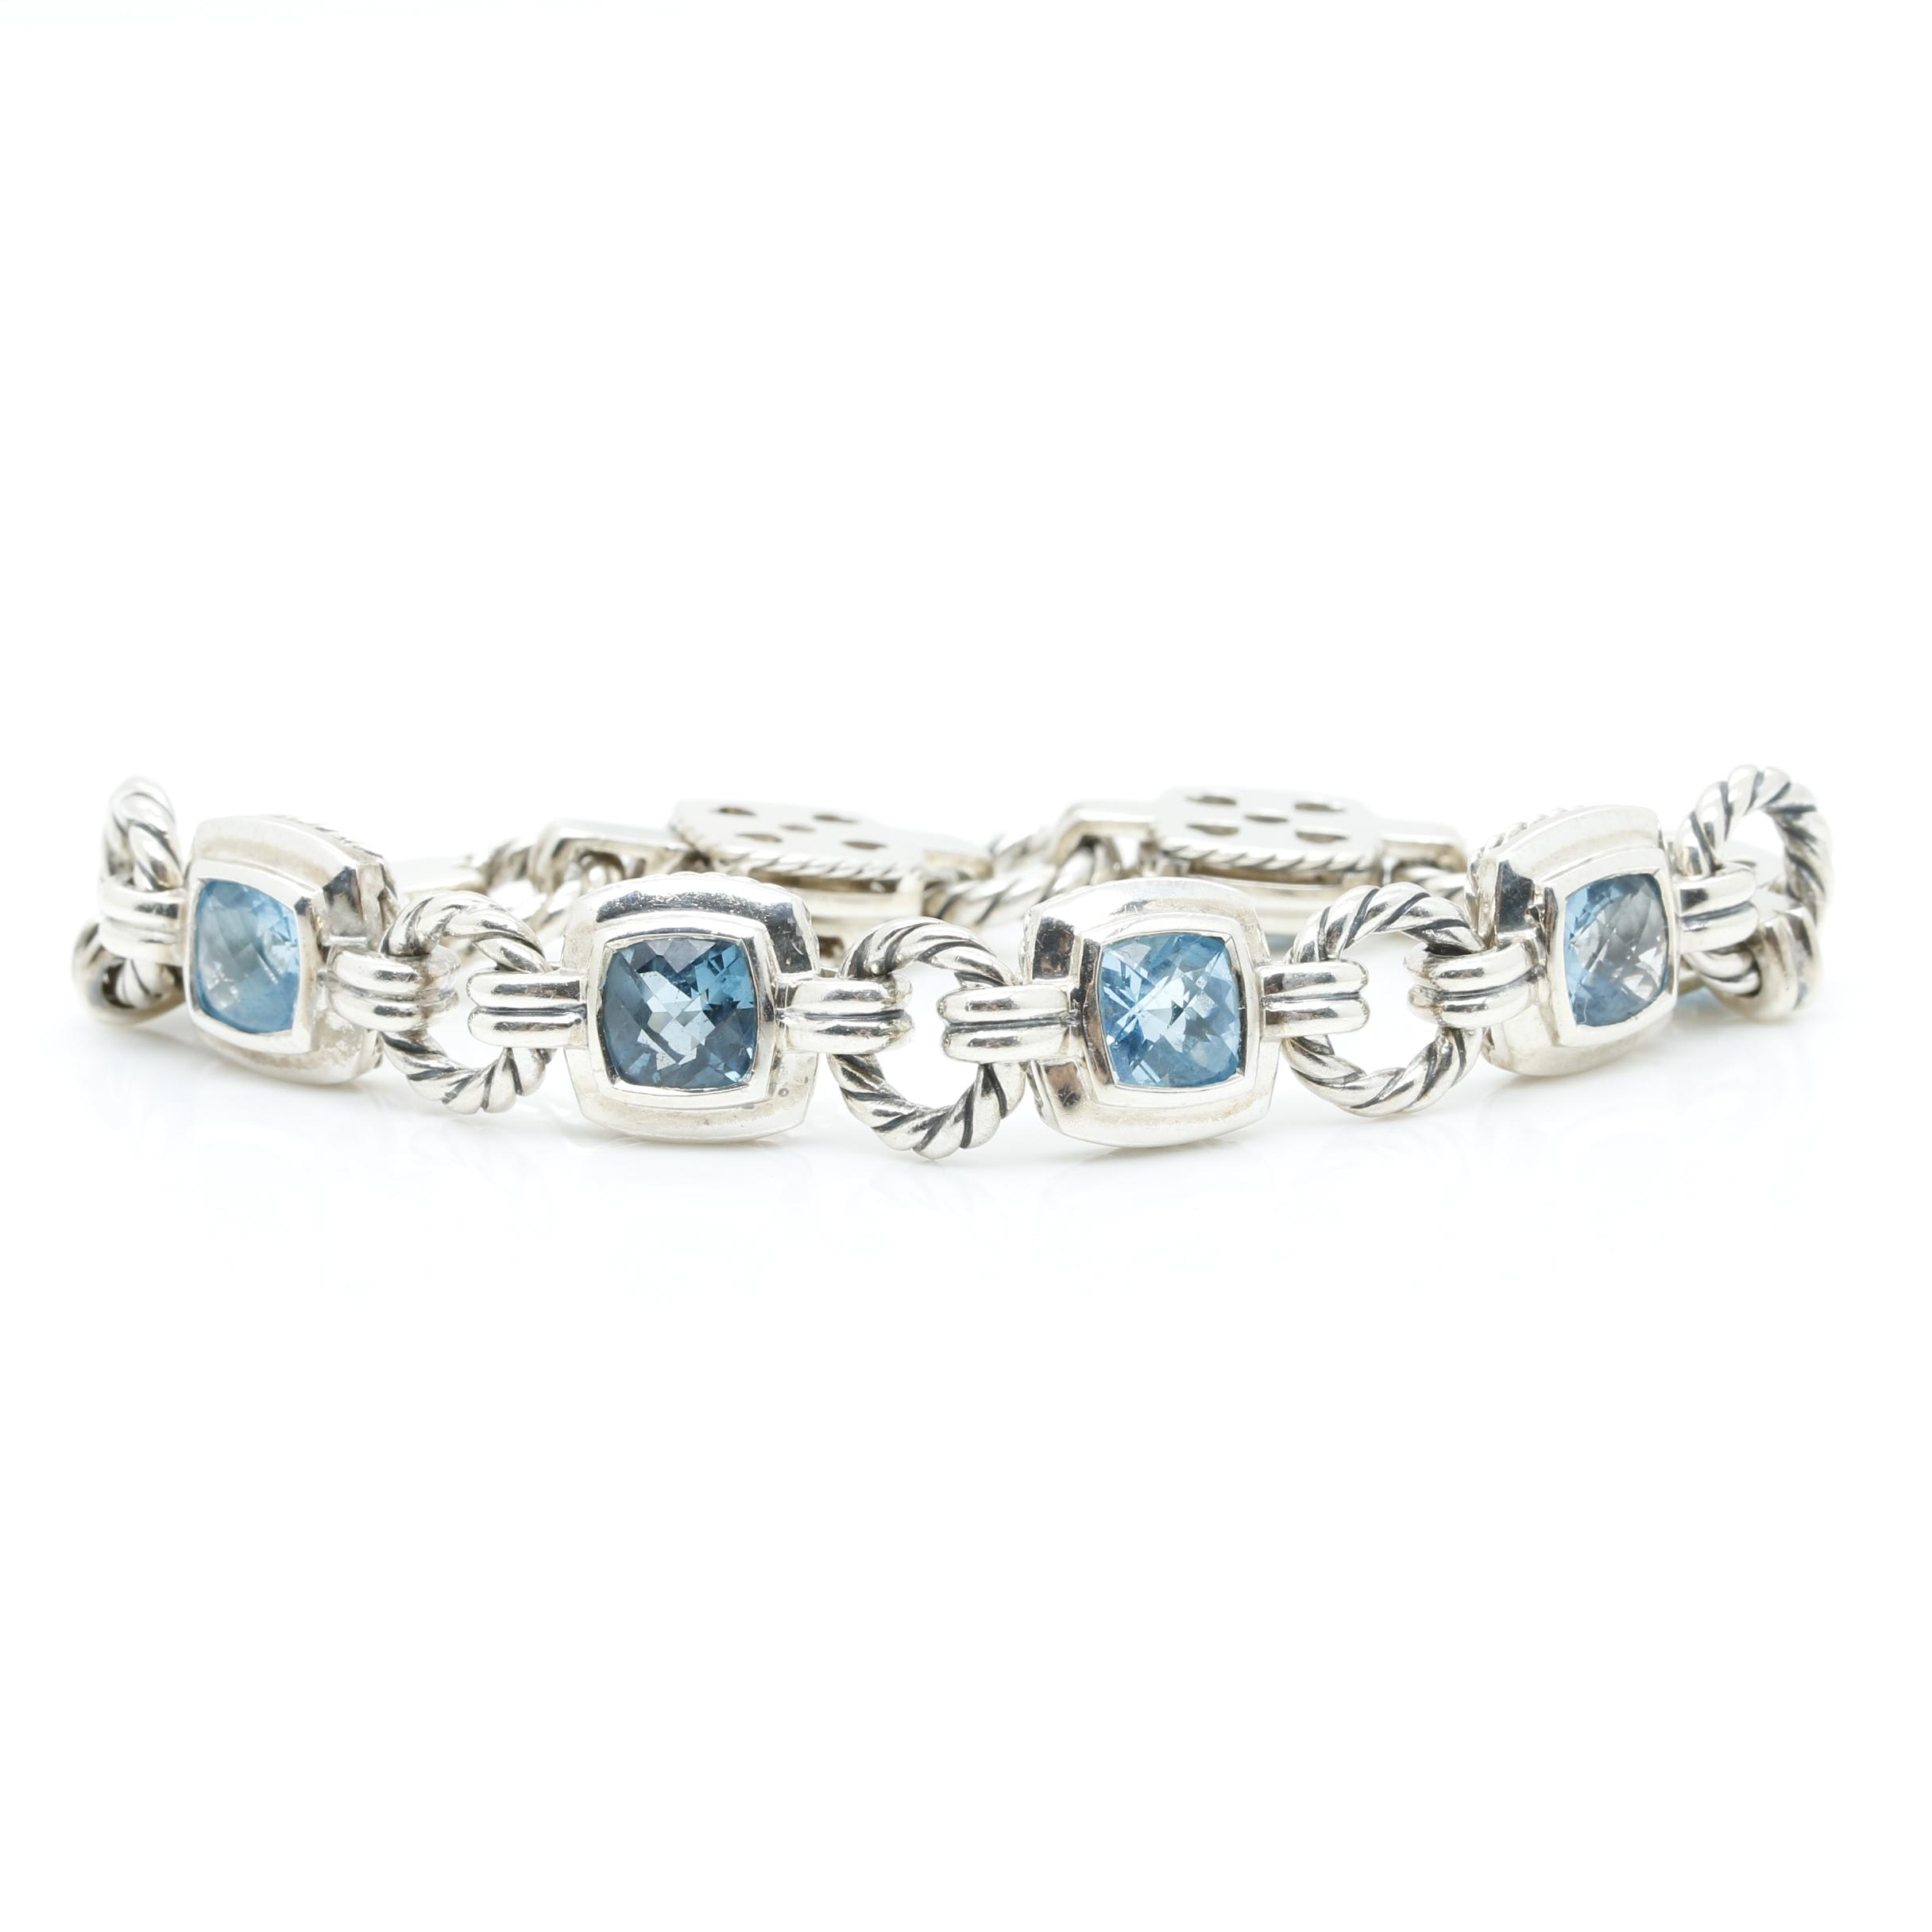 David Yurman Sterling Silver Blue Topaz Bracelet